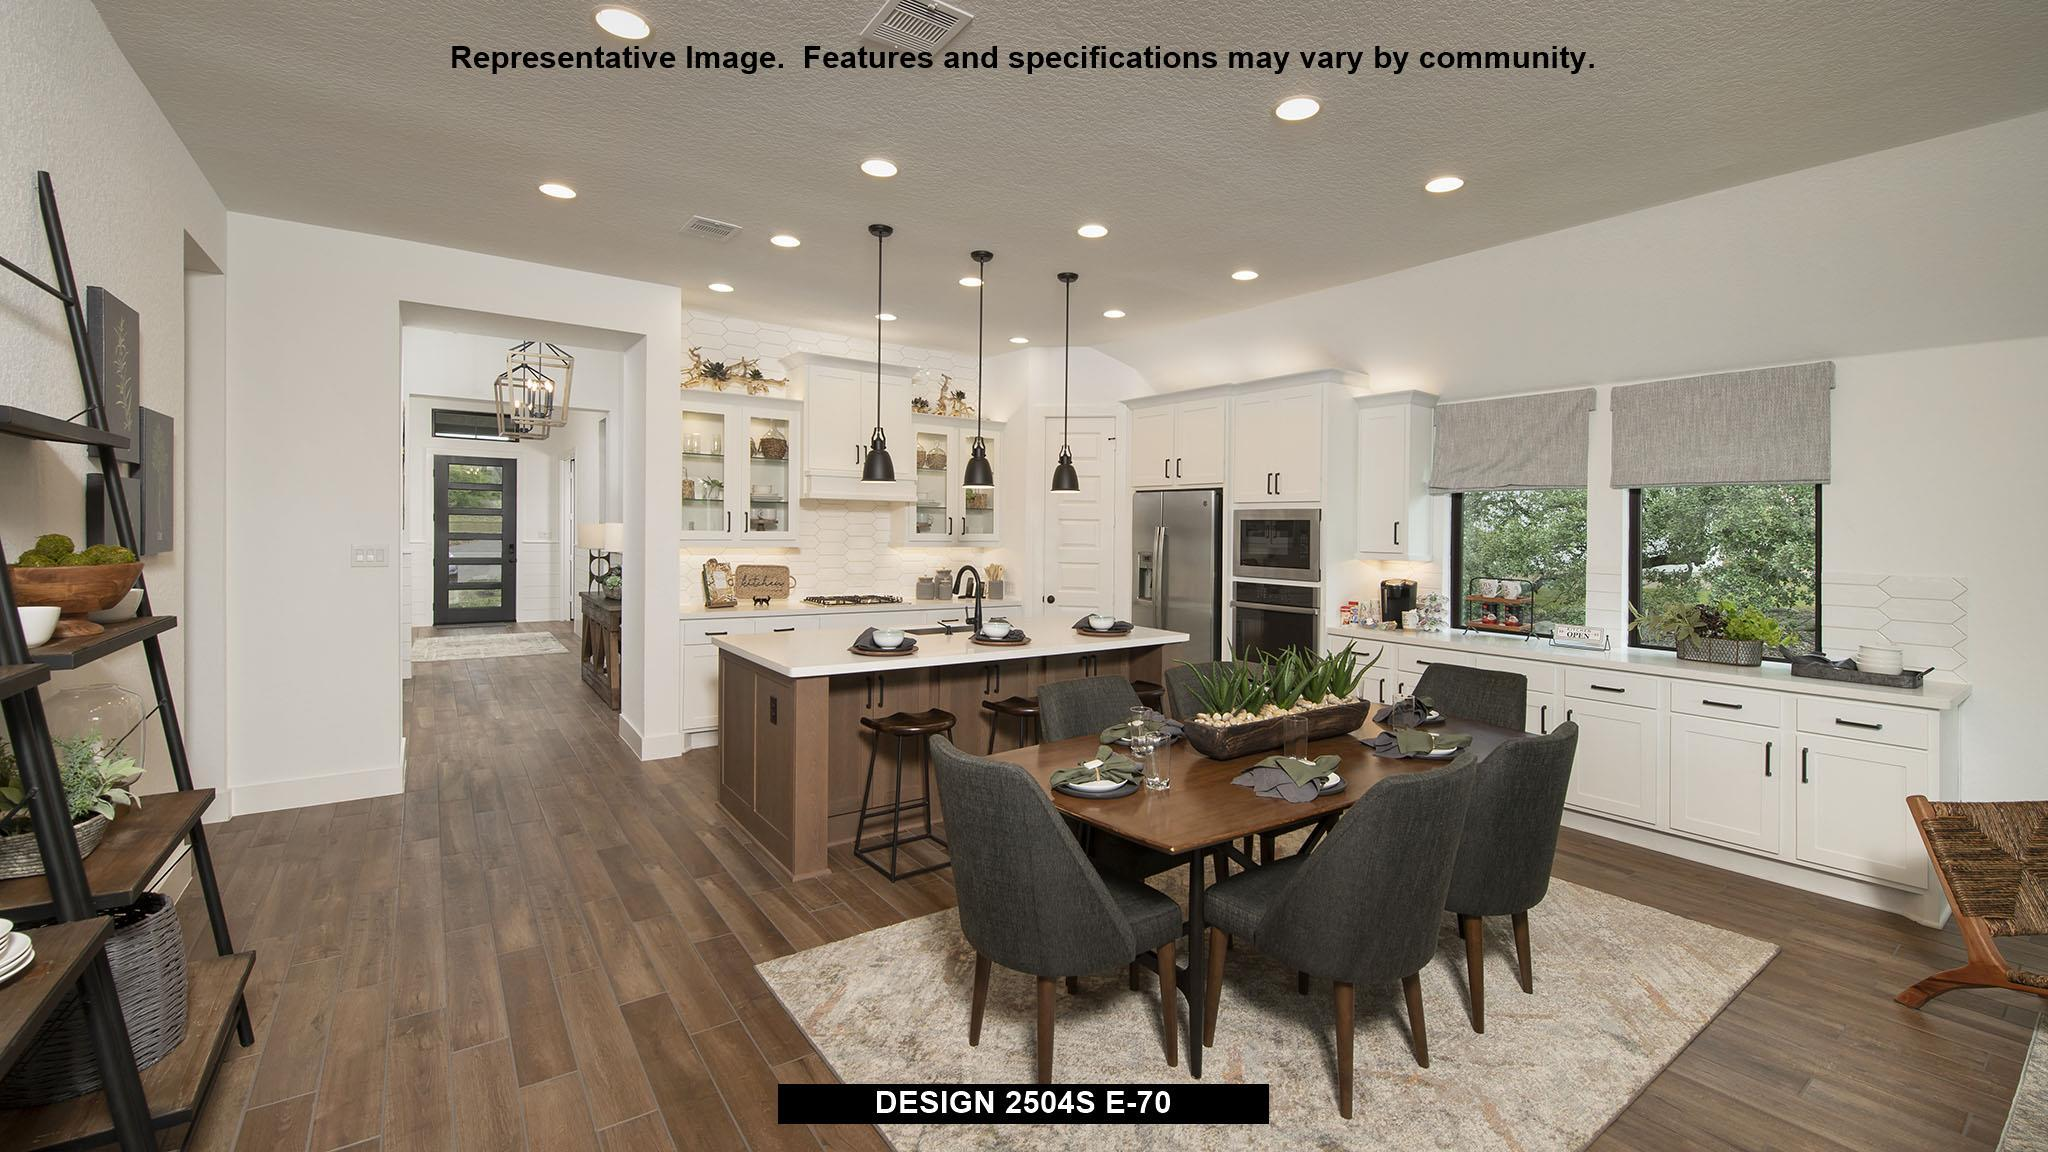 Kitchen featured in the 2504S By Perry Homes in San Antonio, TX